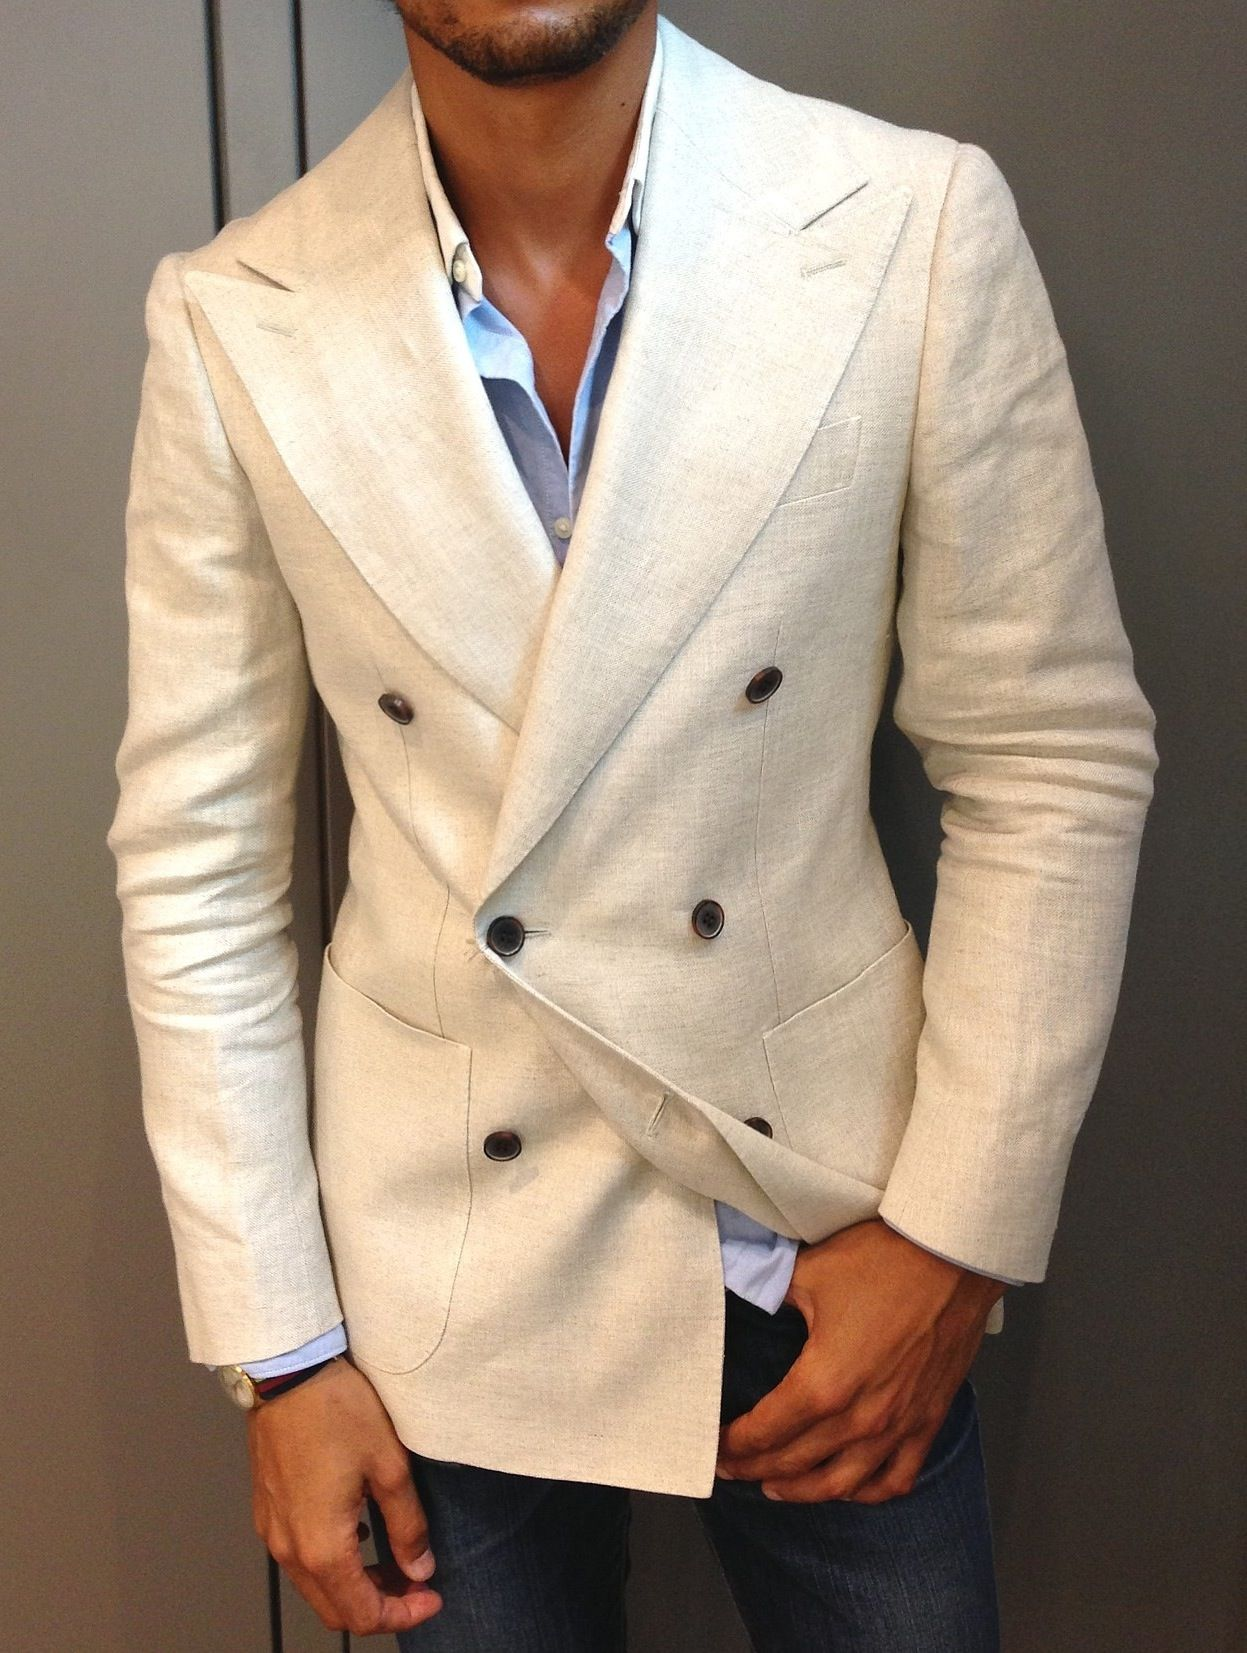 louisnicolasdarbon: Today I'm Wearing Double breasted linen blazer ...